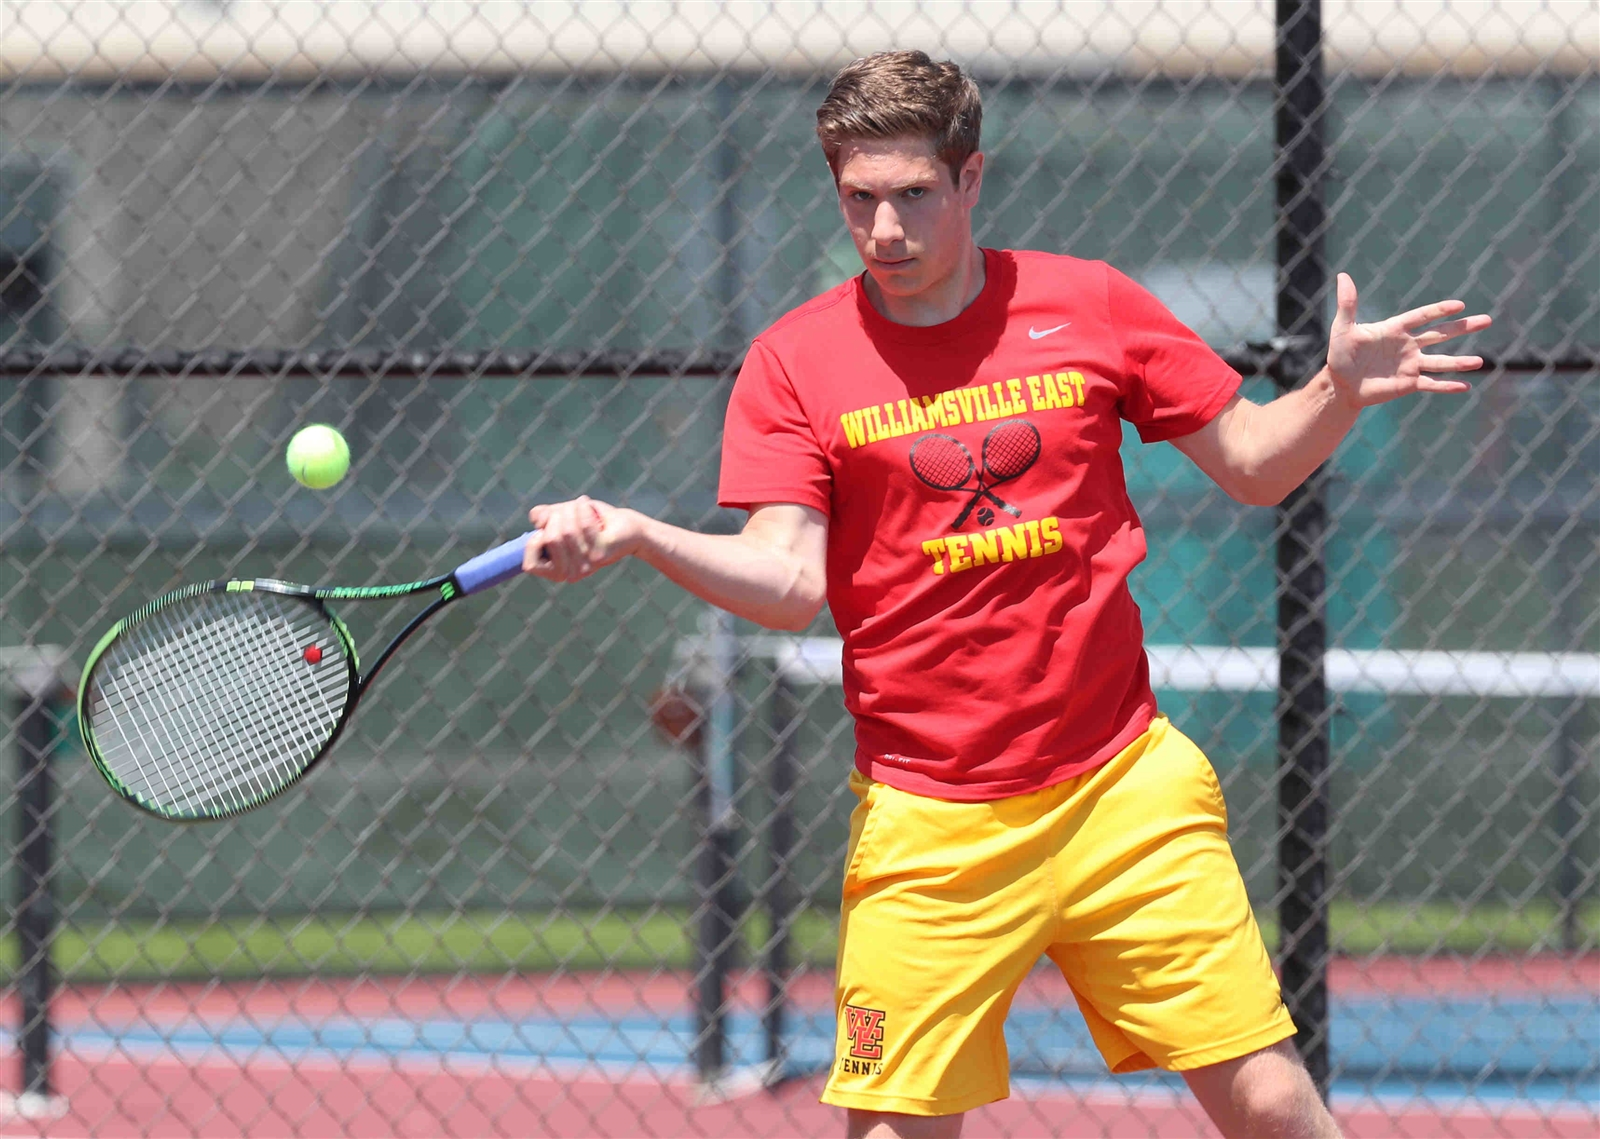 Williamsville East's doubles player Jason Berkun hits a shot.